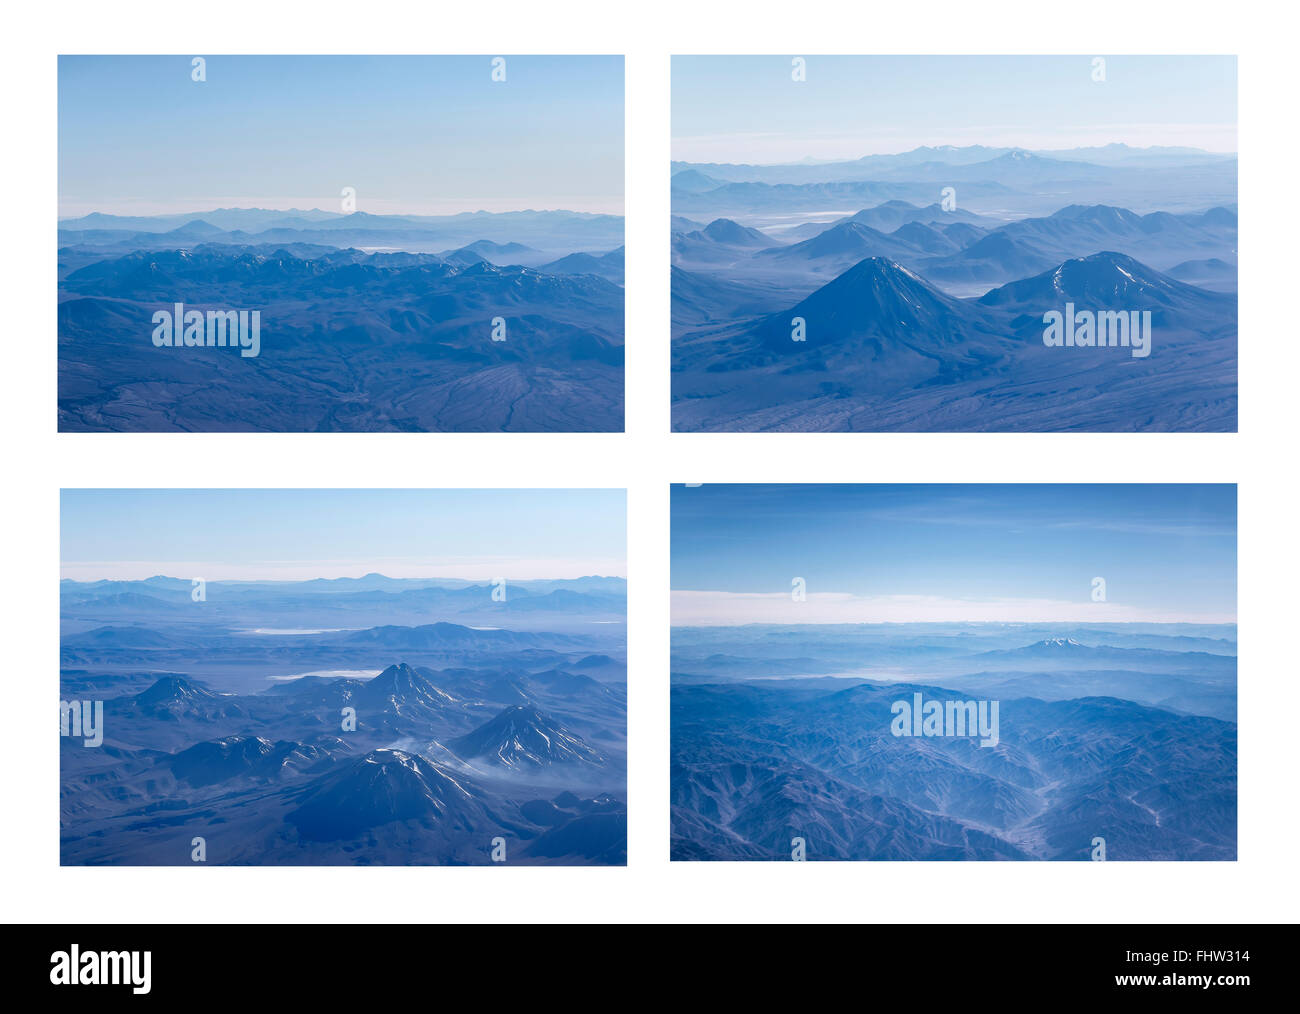 Grid style photo set collection of aerial view of andes mountains landscapes window plane shots. - Stock Image